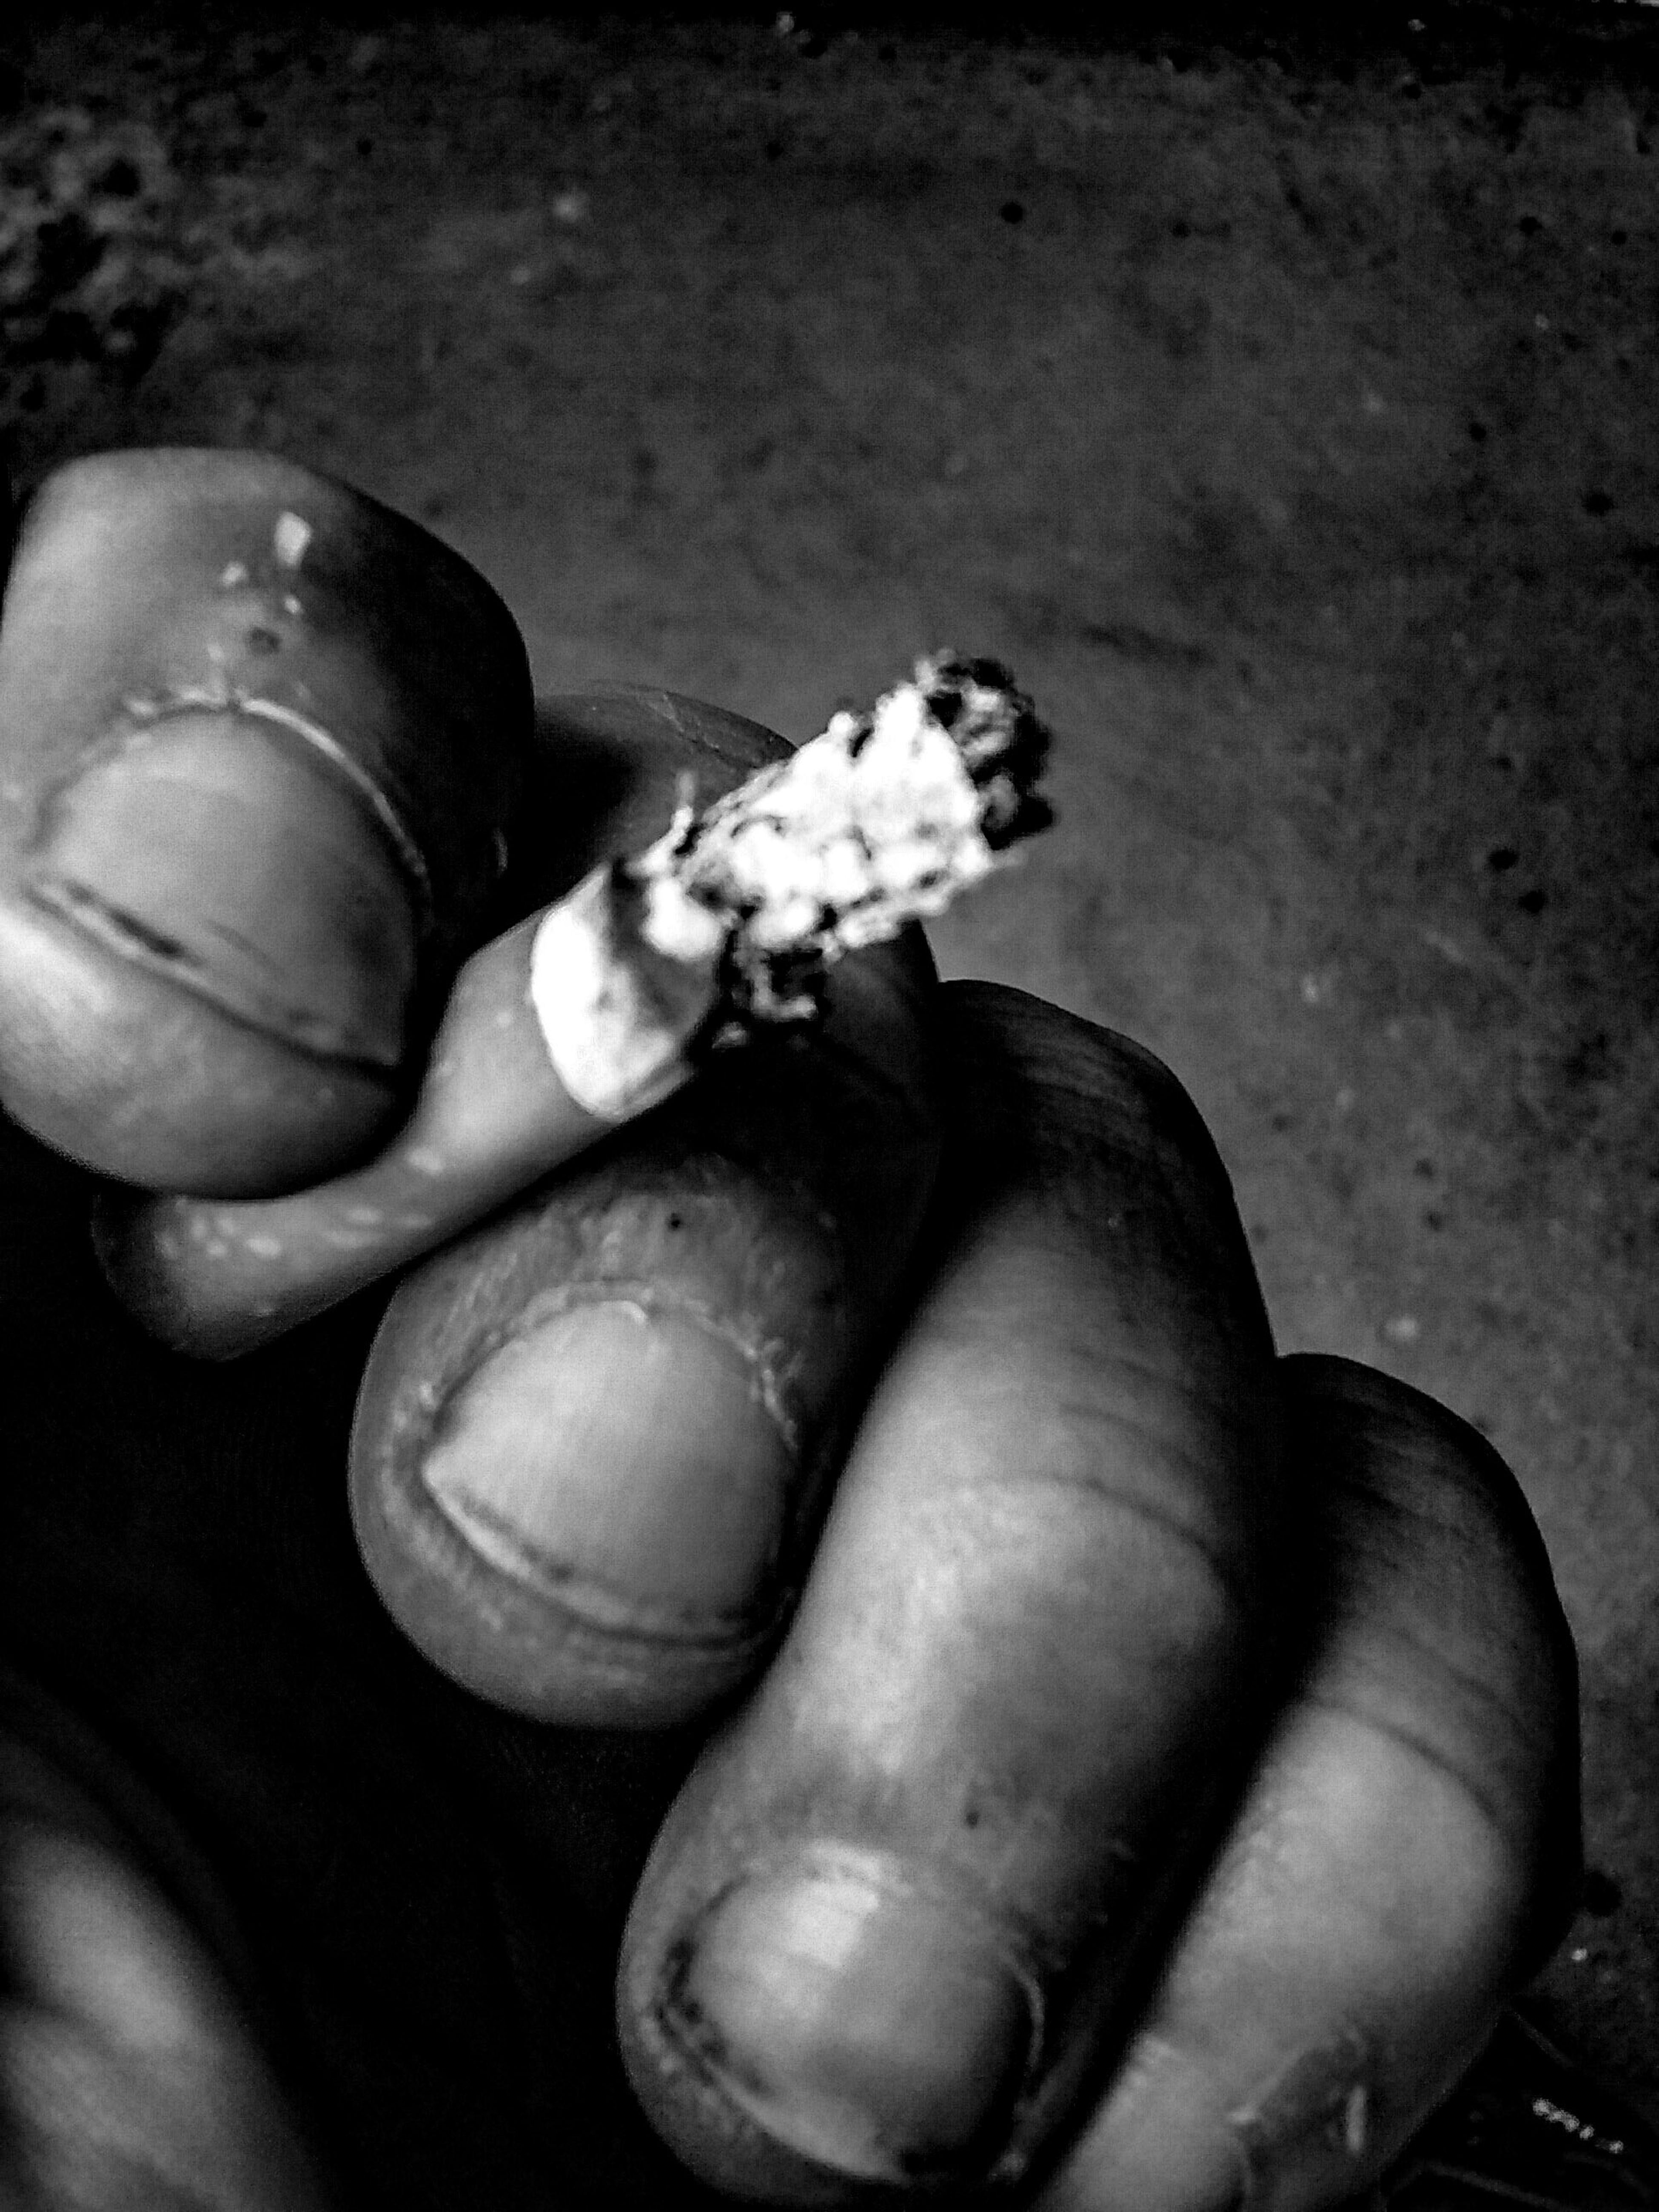 Human Finger Personal Perspective Black And White Photography Smoke Cigarette  Poison Beat Up Hand Rawpdx Unseen Portland Black And White Blackandwhite RawArtists Barron City Life Pdxlove Artinportland Fine Art Photography PortlandOregon Portland, OR Portlandia Black And White Portrait Rebelarmy Pdx Blackandwhitephoto Pdxart